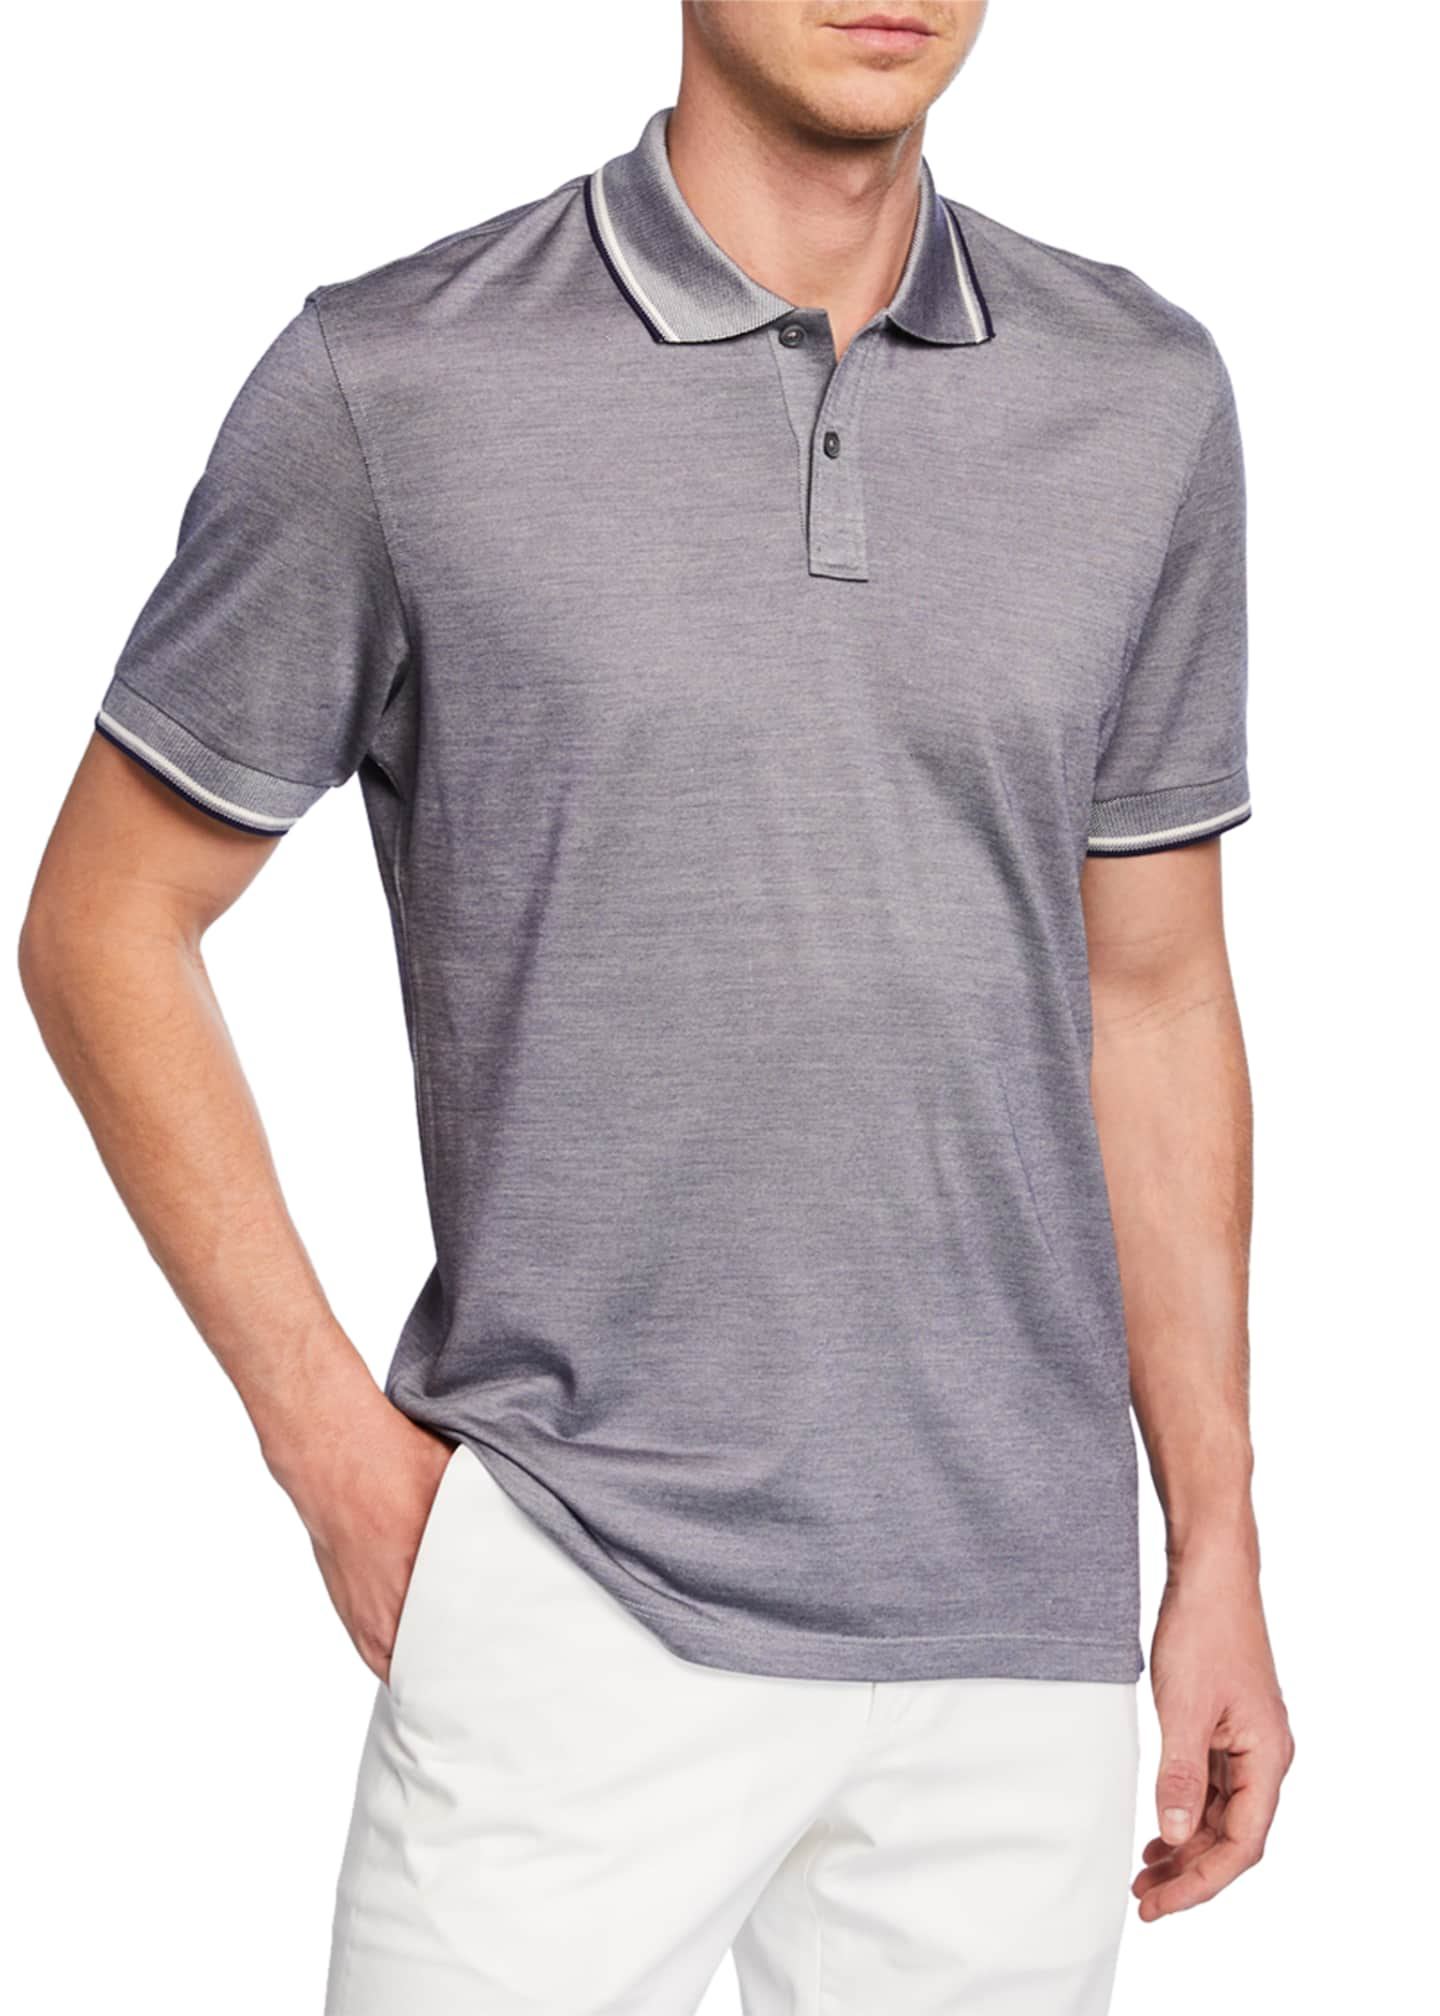 Image 1 of 2: Men's Jersey Polo Regular-Fit Shirt with Double Striped Collar